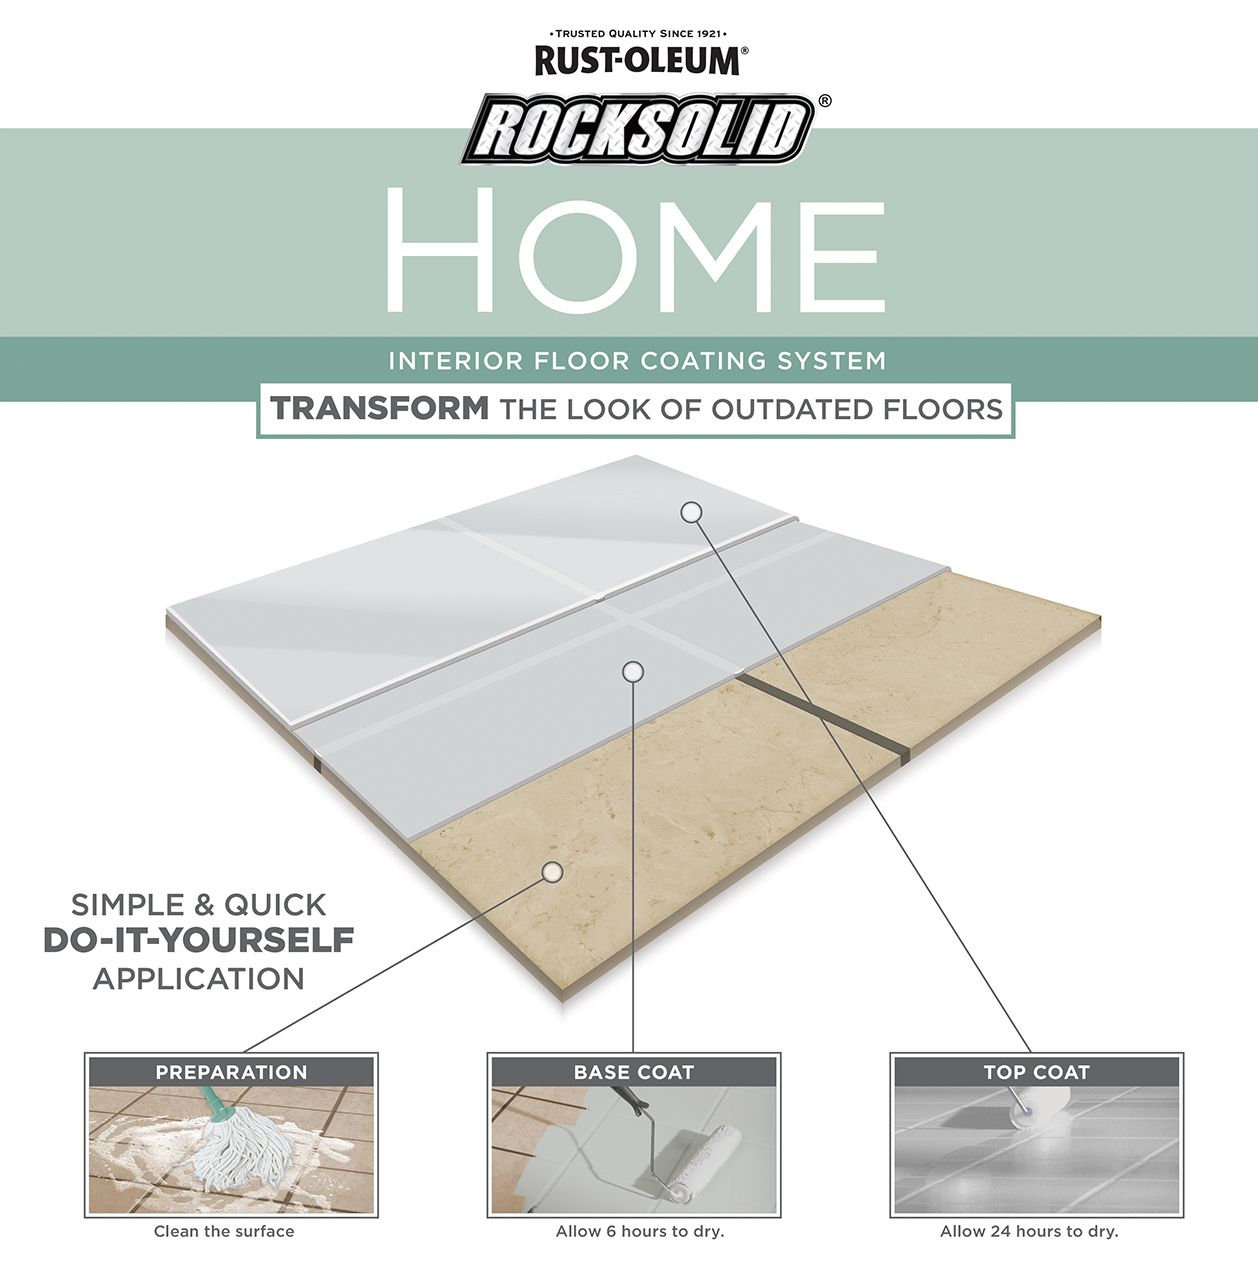 How To Paint A Floor Rocksolid Home Base Coat Tint Base Rust Oleum Floor Coating Rustoleum Flooring